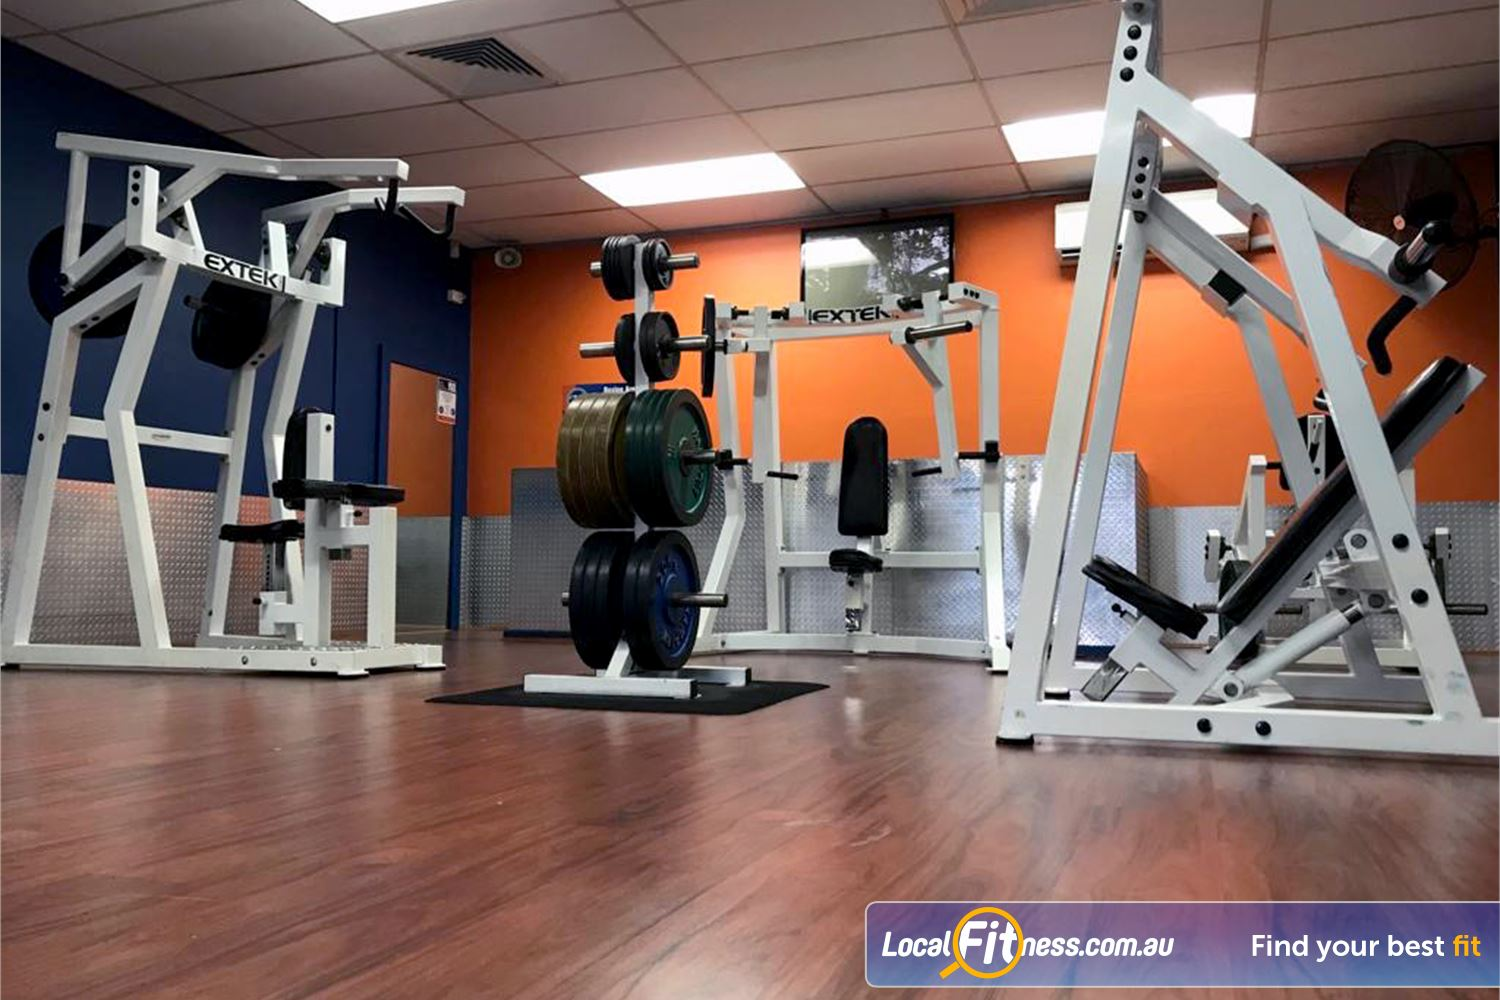 Plus Fitness Health Clubs Northmead A comprehensive range of plate-loadng machines at Plus Fitness Northmead.